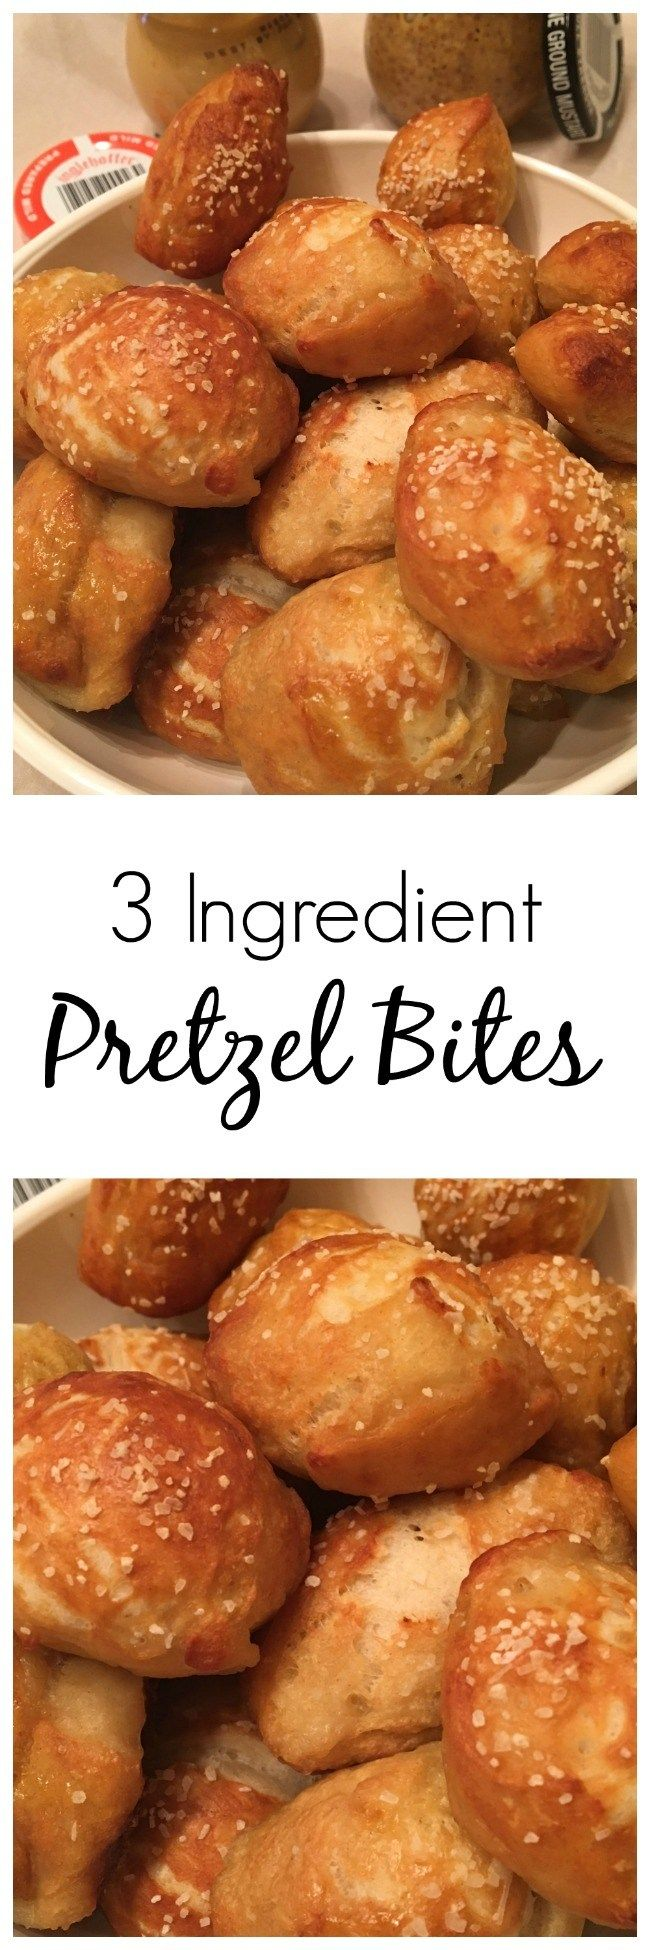 Only 3 ingredients. You can't get much simpler than that, unless you buy frozen pretzel bites and that's no fun and definitely not as tasty.